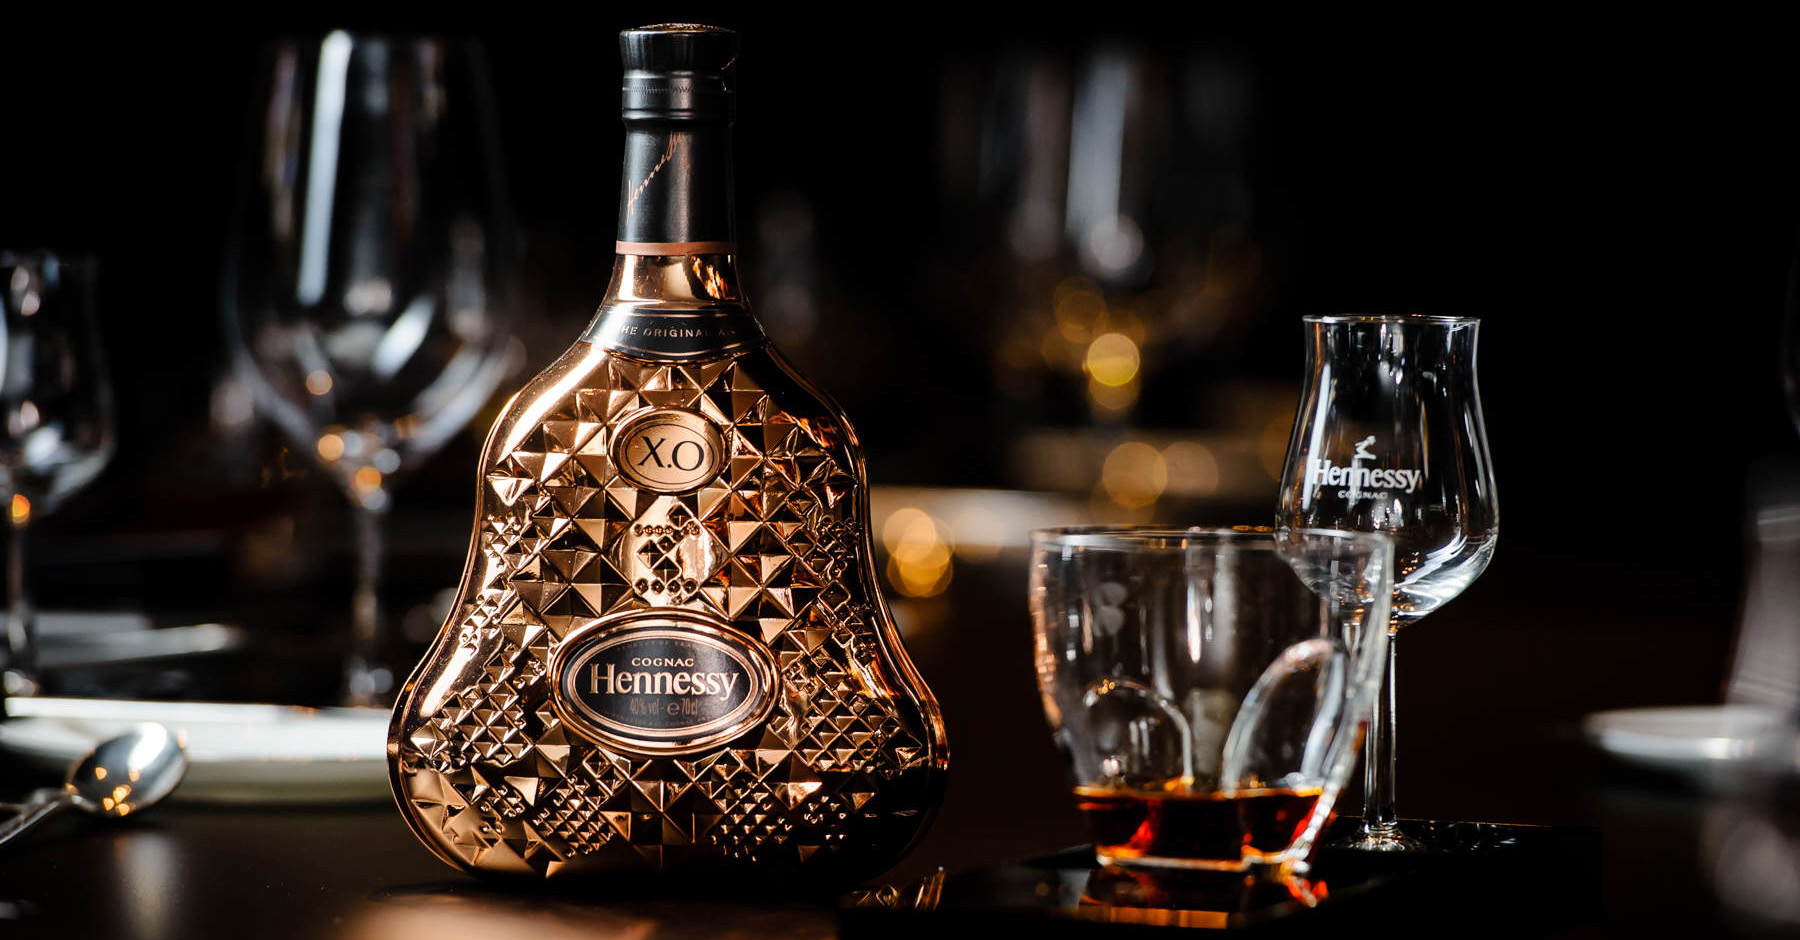 Find The New and Exclusive Bottle by Tom Dixon luxury resort Meet the luxury resort that you will fall in love with exclusive bottle luxury resort Meet the luxury resort that you will fall in love with exclusive bottle